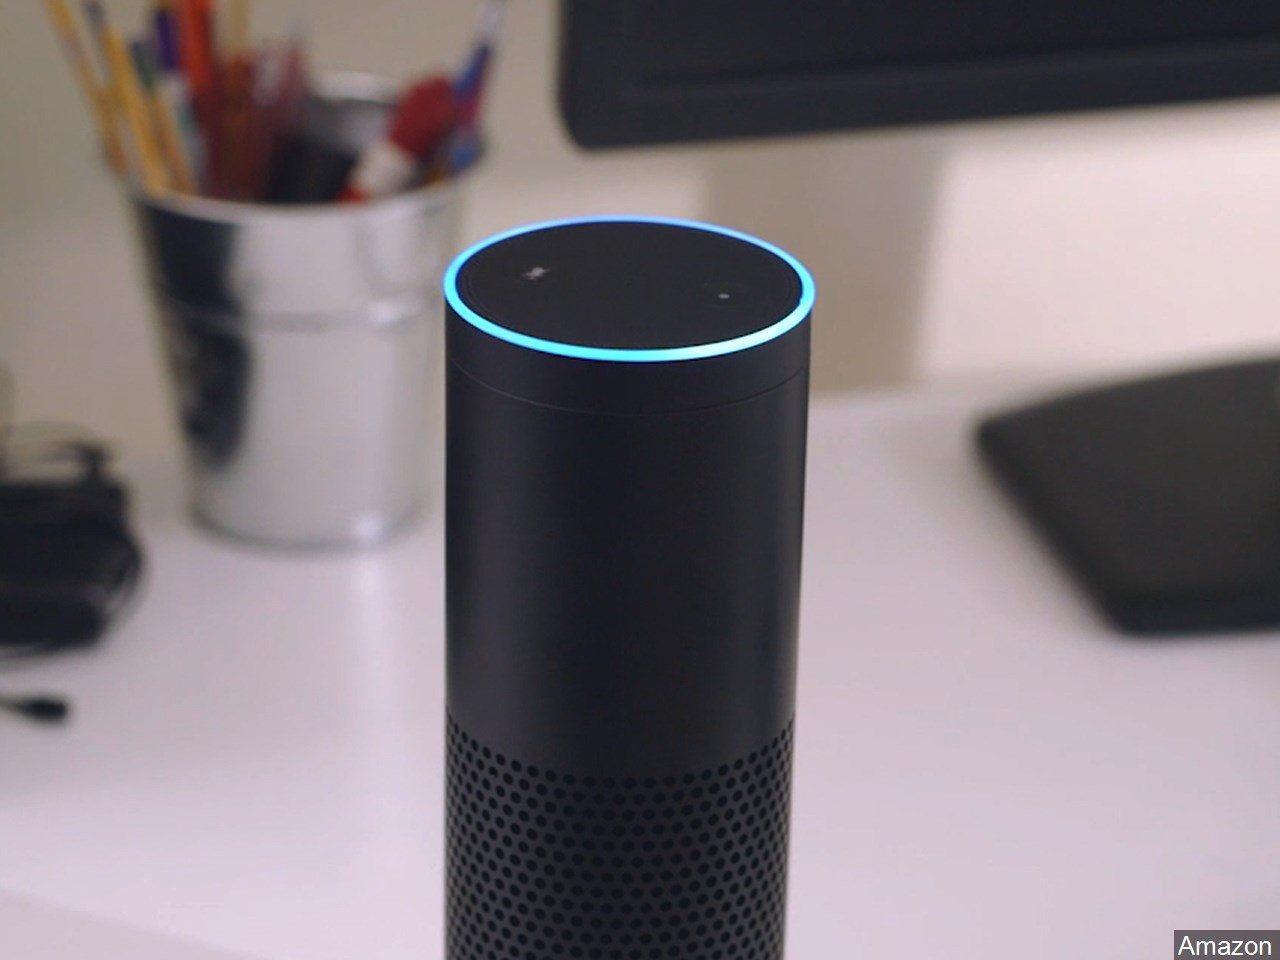 Amazon Echo users report the device laughs without being prompted